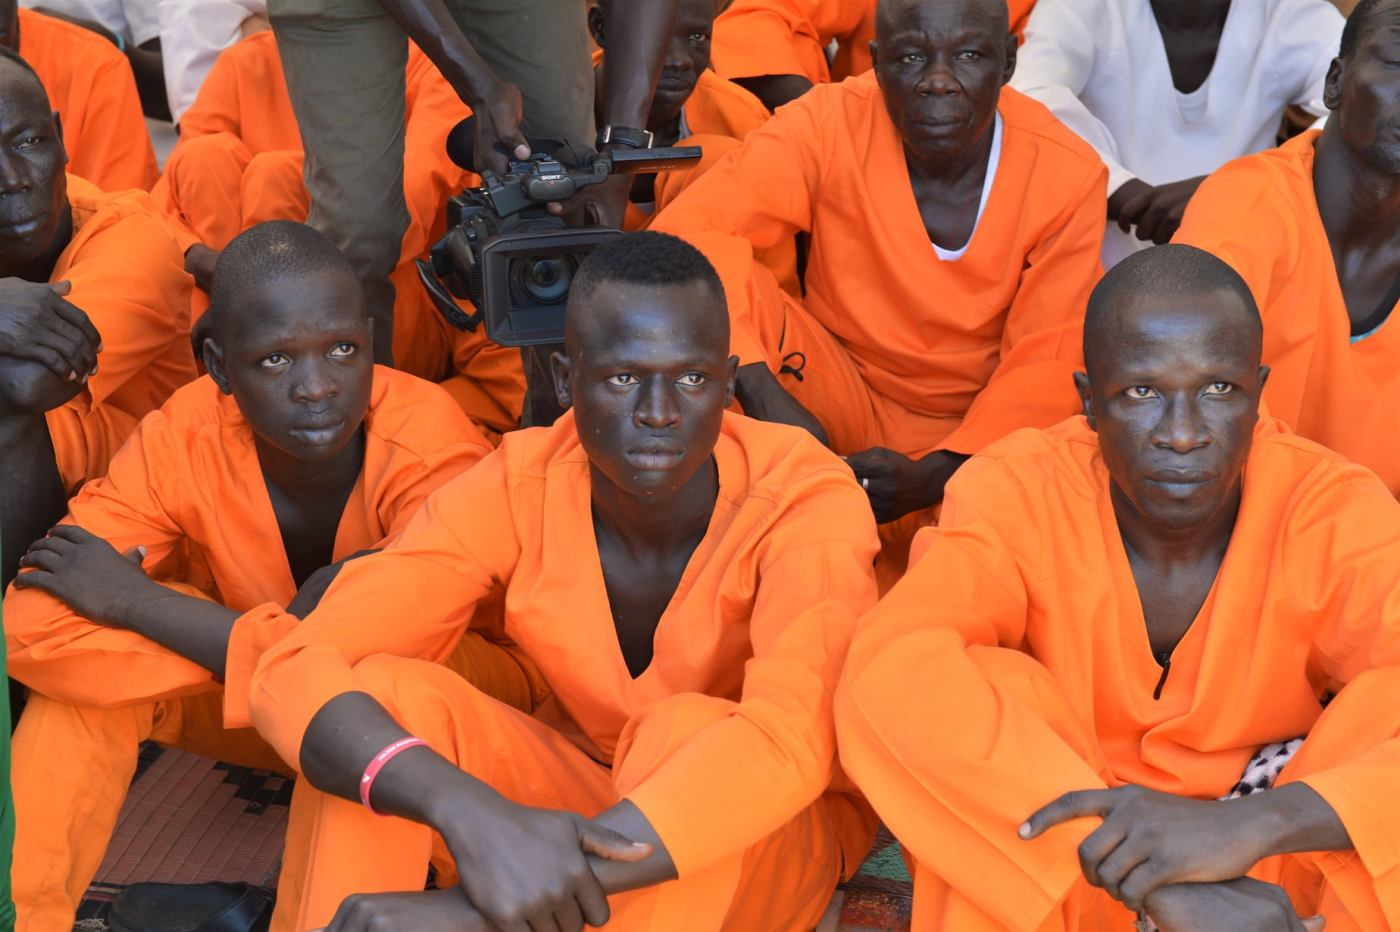 Some of the inmates president Salva Kiir visited at the national prison in Juba on Tuesday, December 24, 2019(Photo credit: SSPPU/Nyamilepedia)